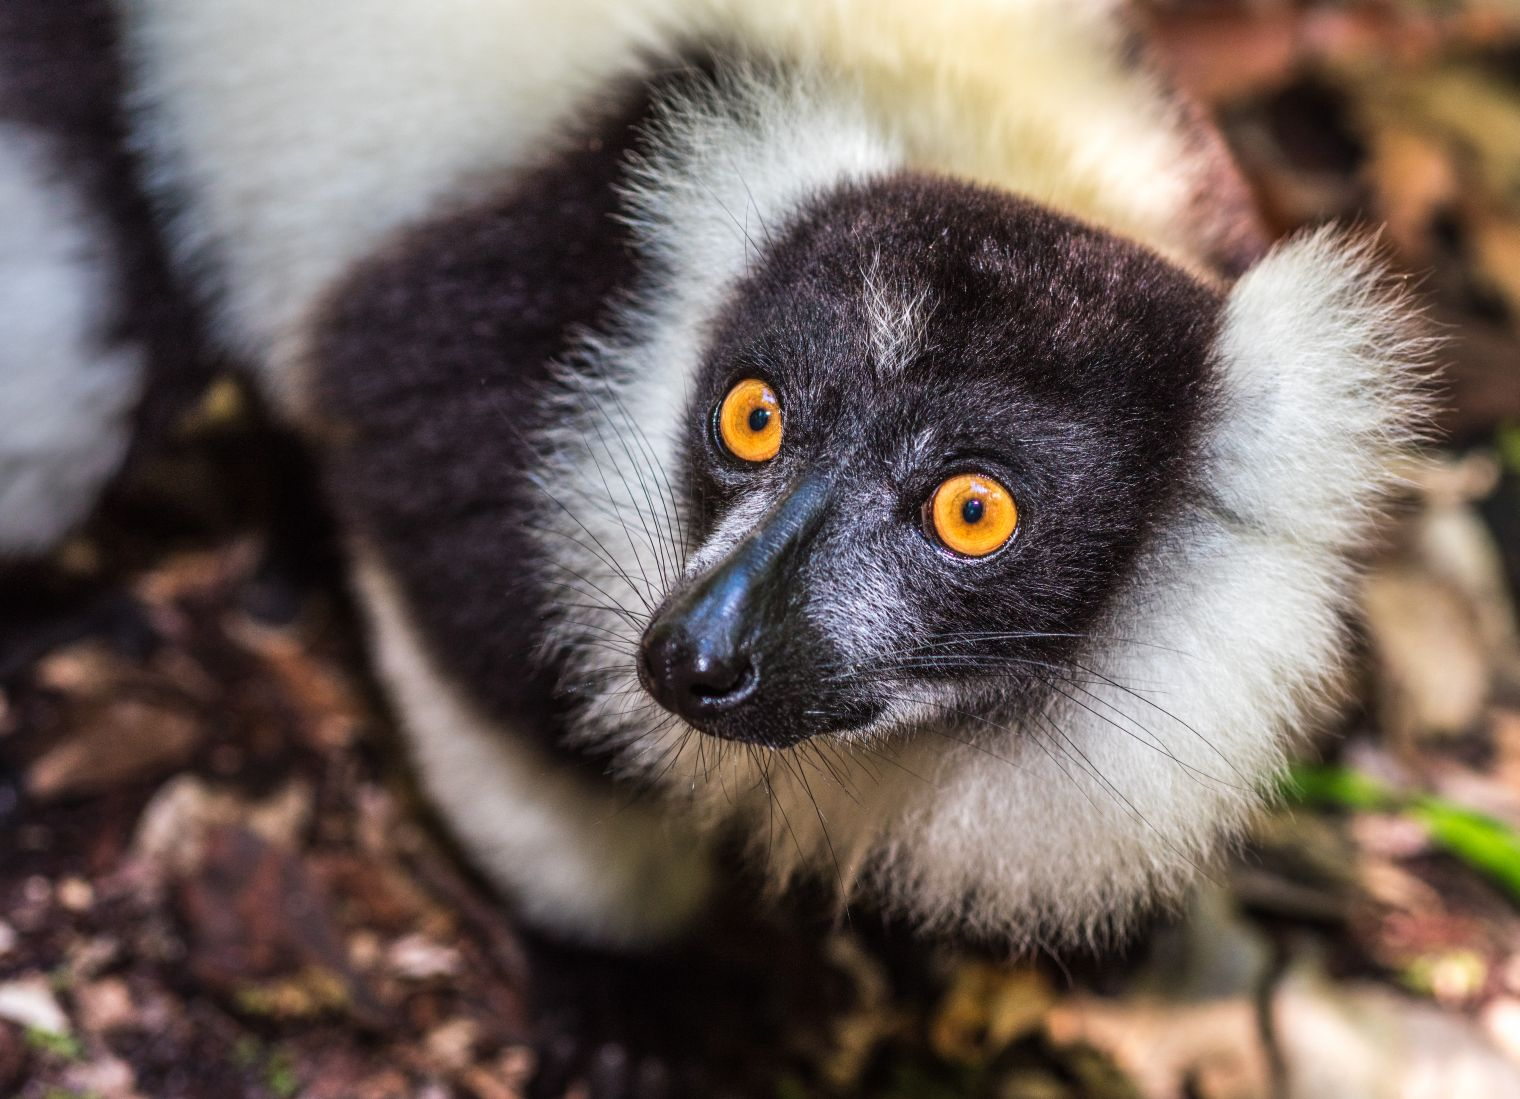 Over the past 17 years, the Anjajavy le Lodge has been contributing to the protection of the biodiversity and indigenous communities of Anjajavy, Madagascar, through luxury eco-tourism.